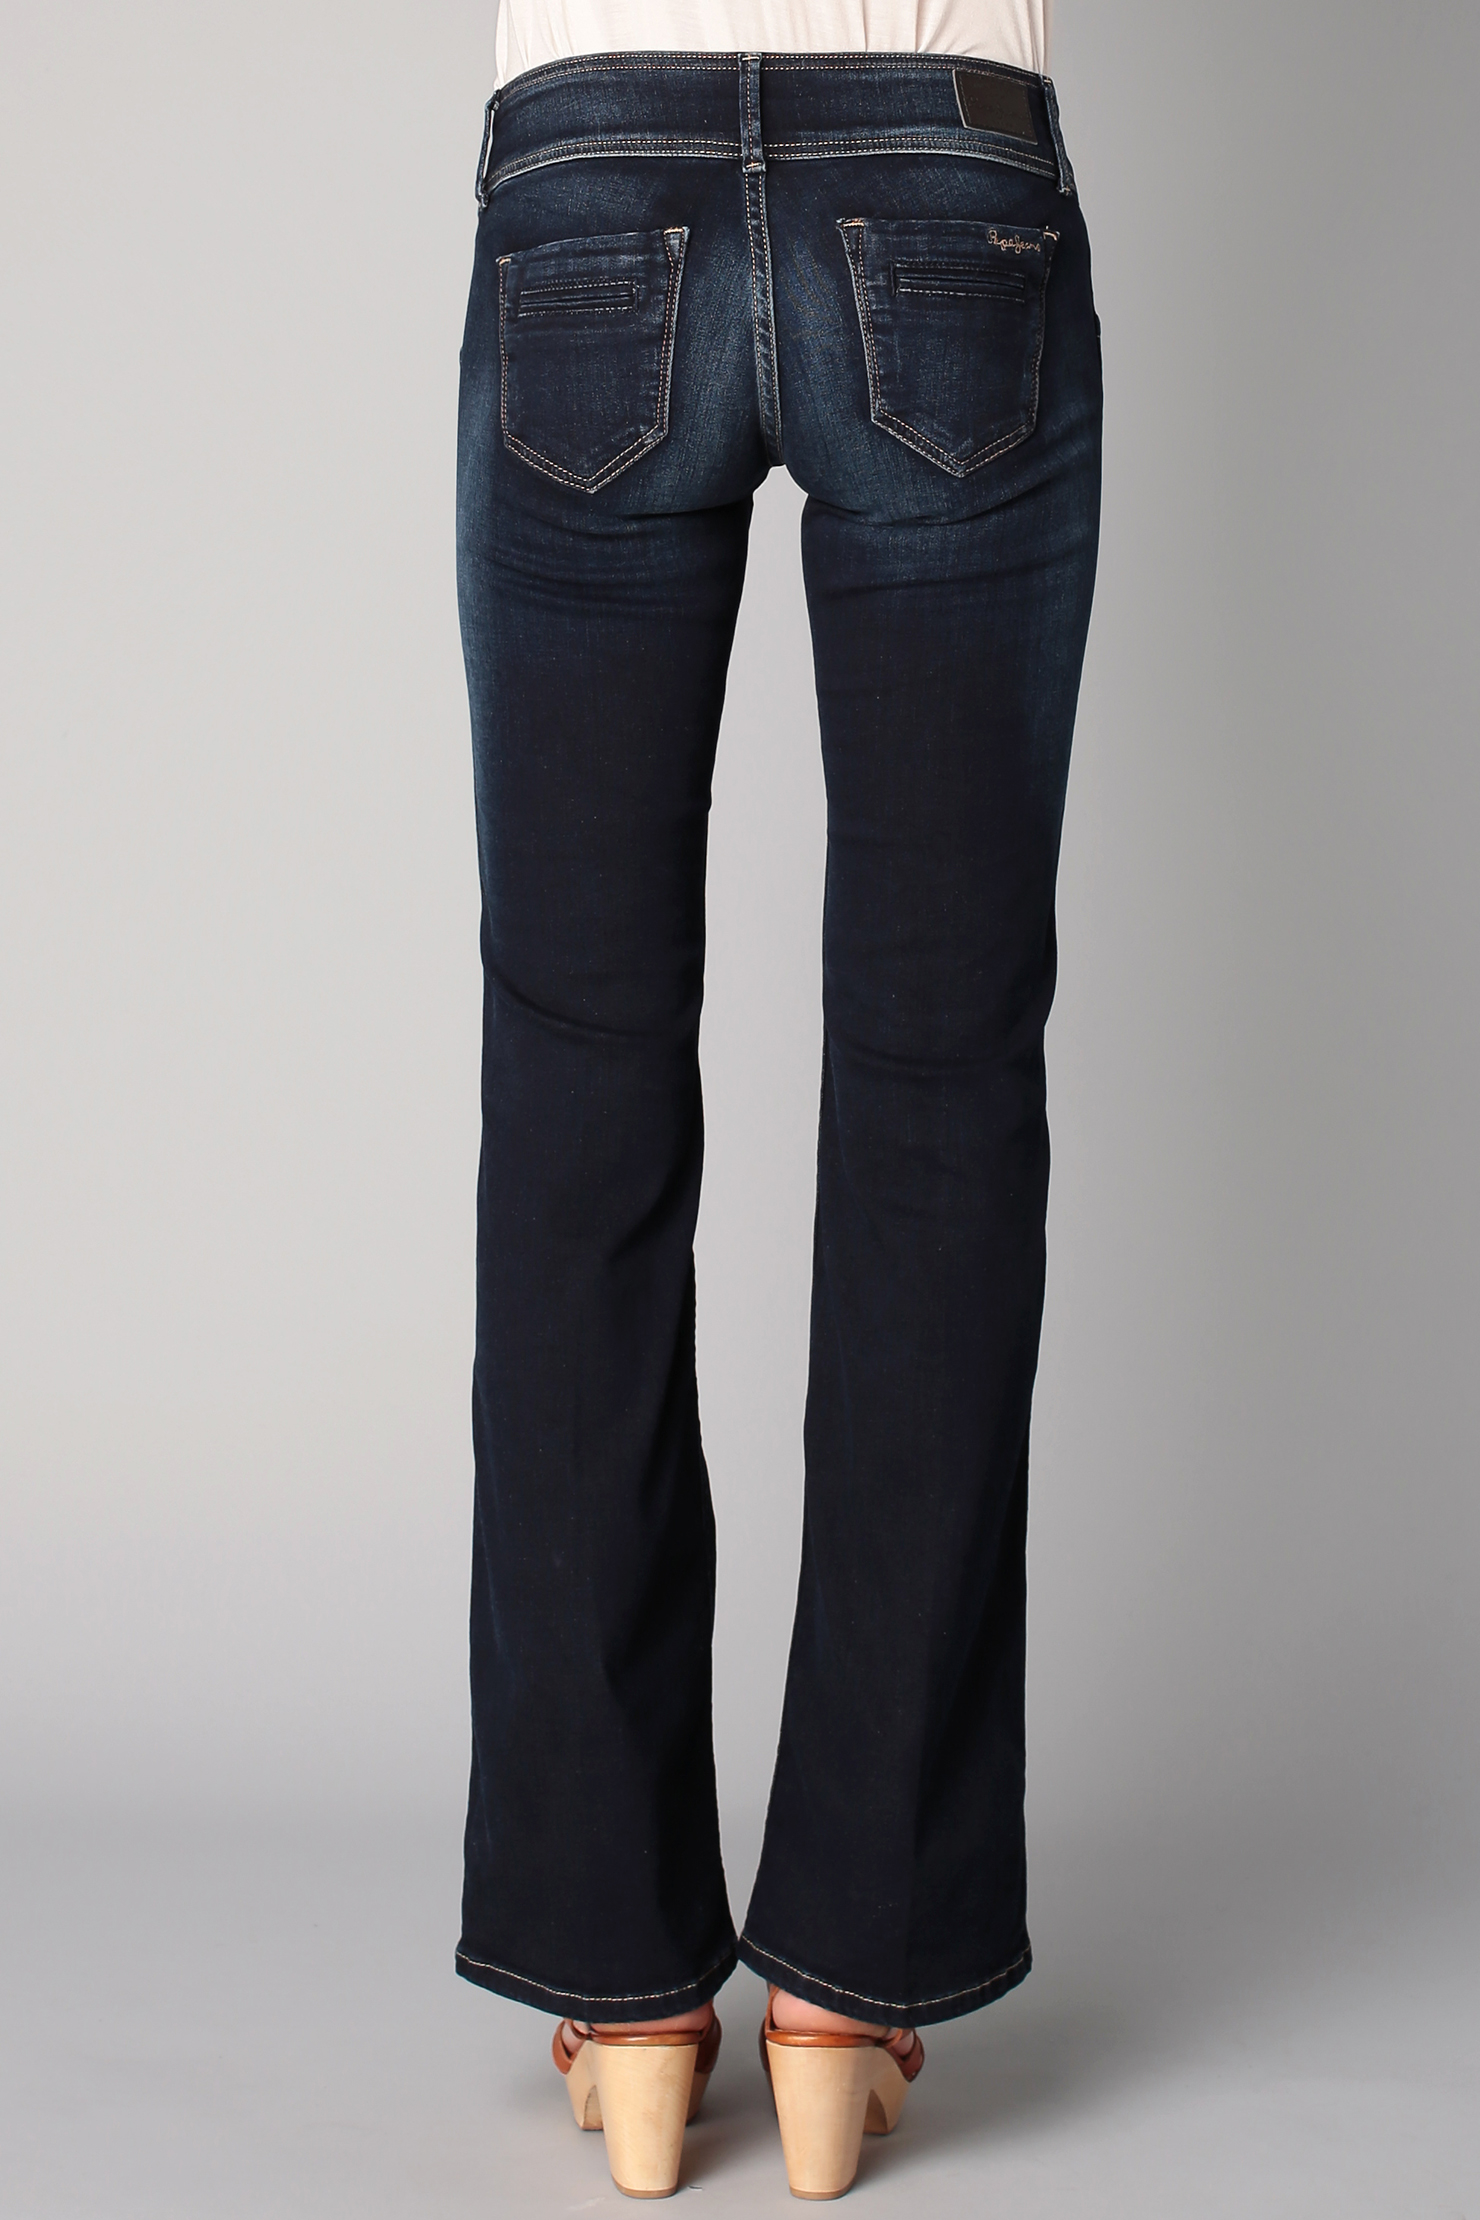 Pepe Jeans Bootcut